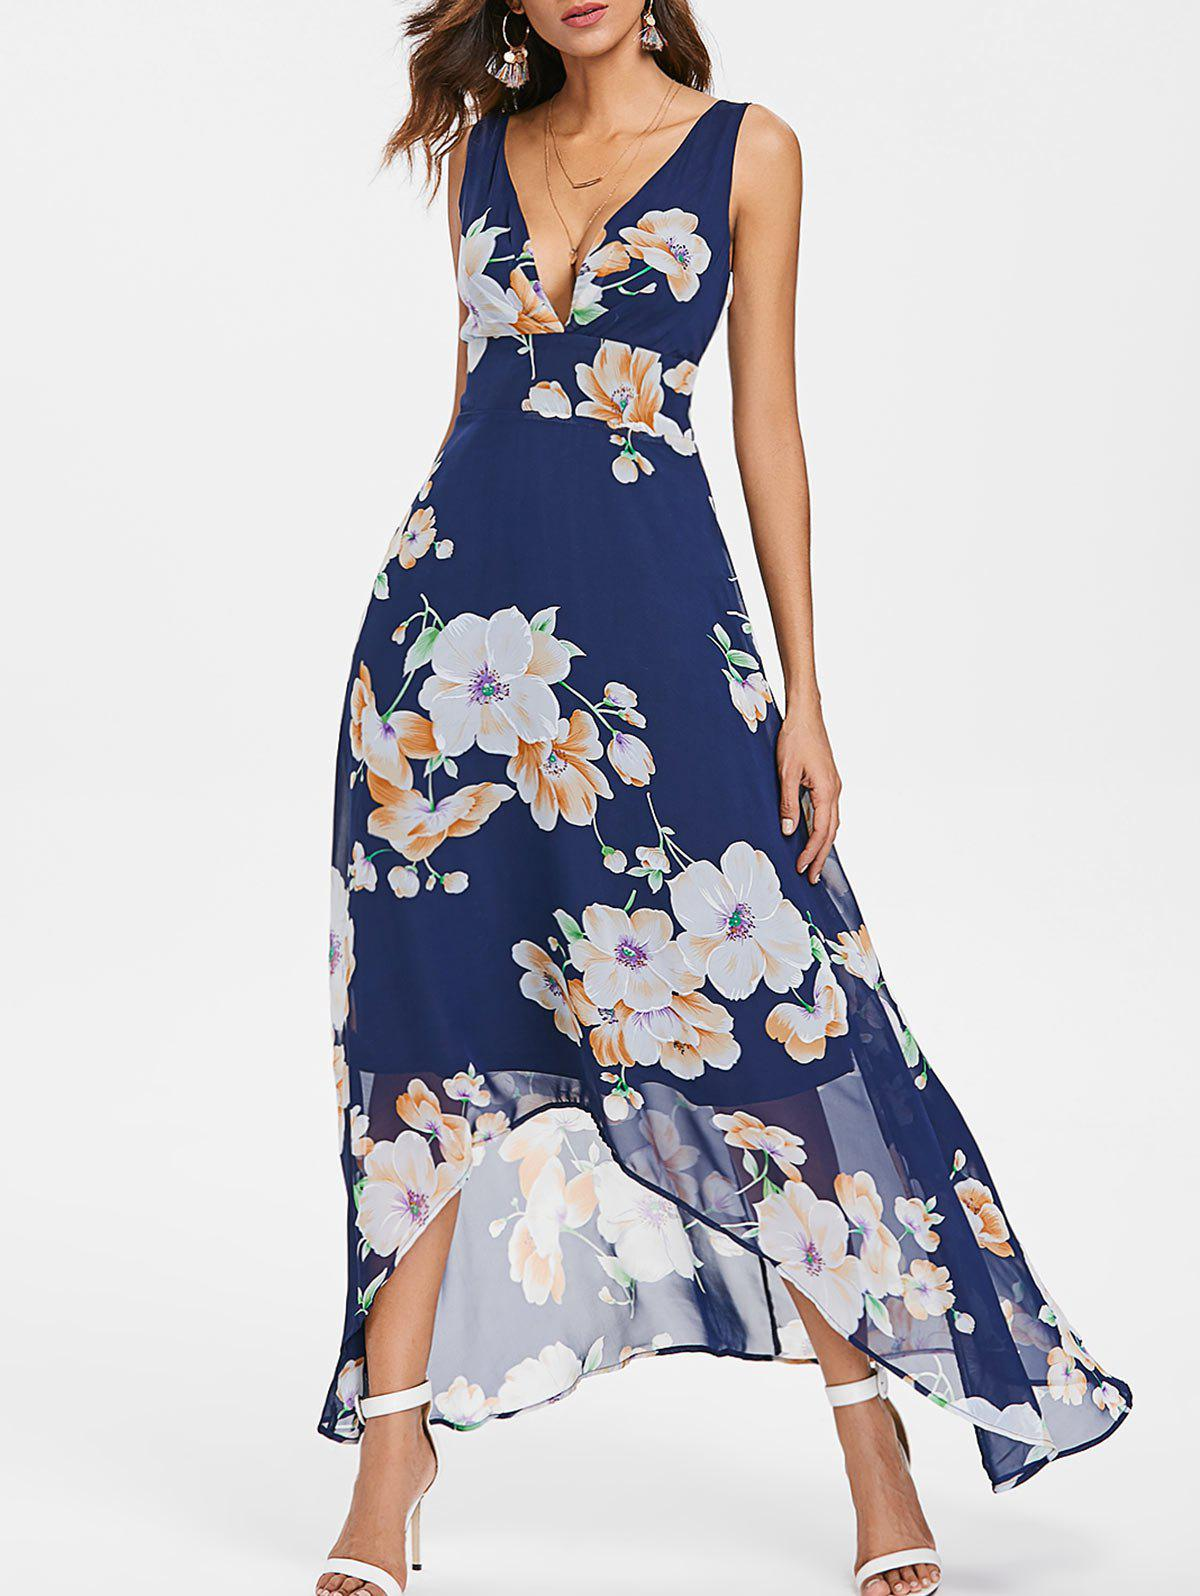 Empire Waist Long Flower Chiffon Dress - DEEP BLUE 2XL